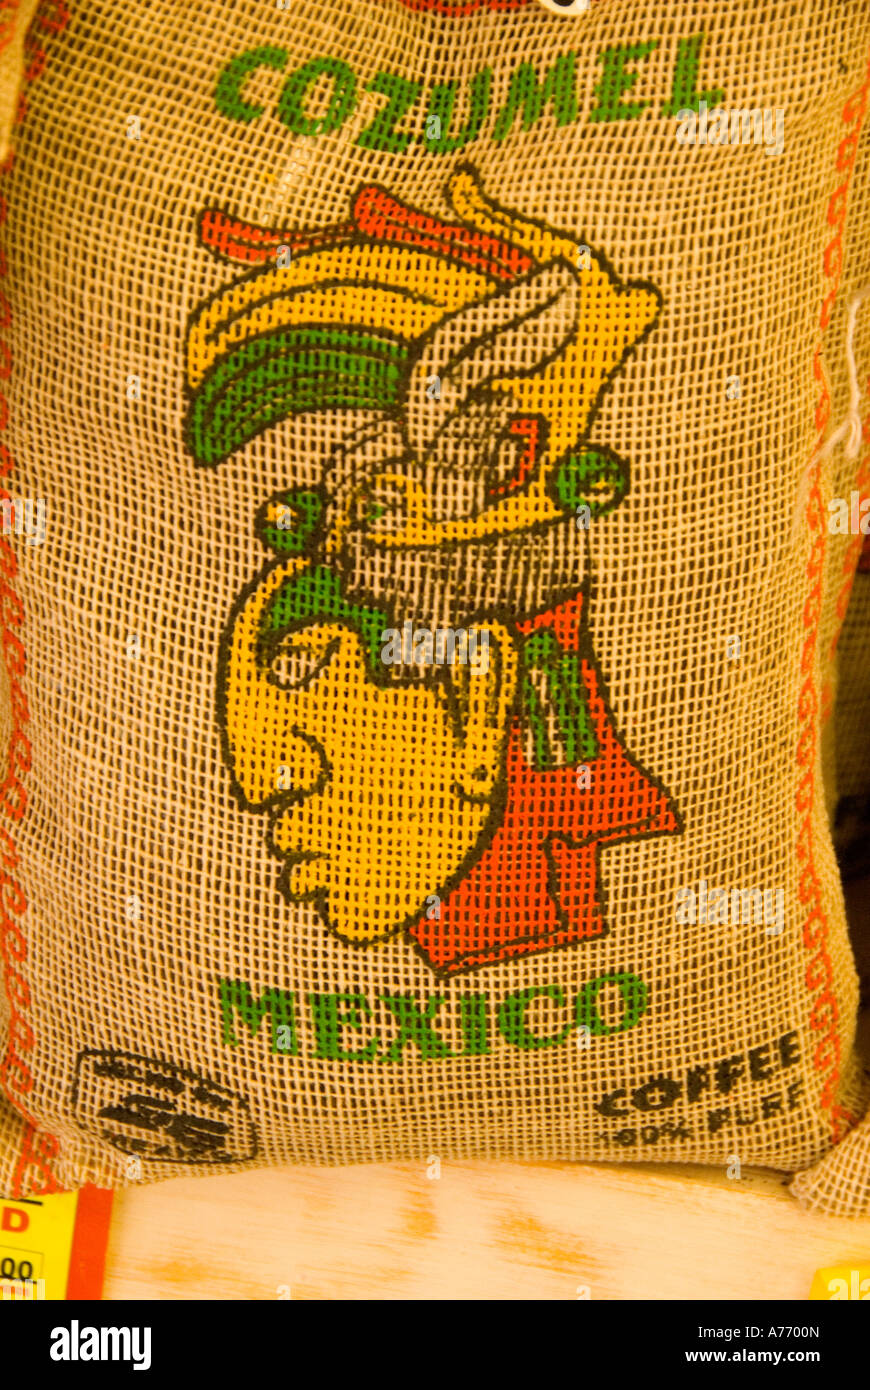 Cozumel Mexico bag of coffee mayan face for advertising - Stock Image